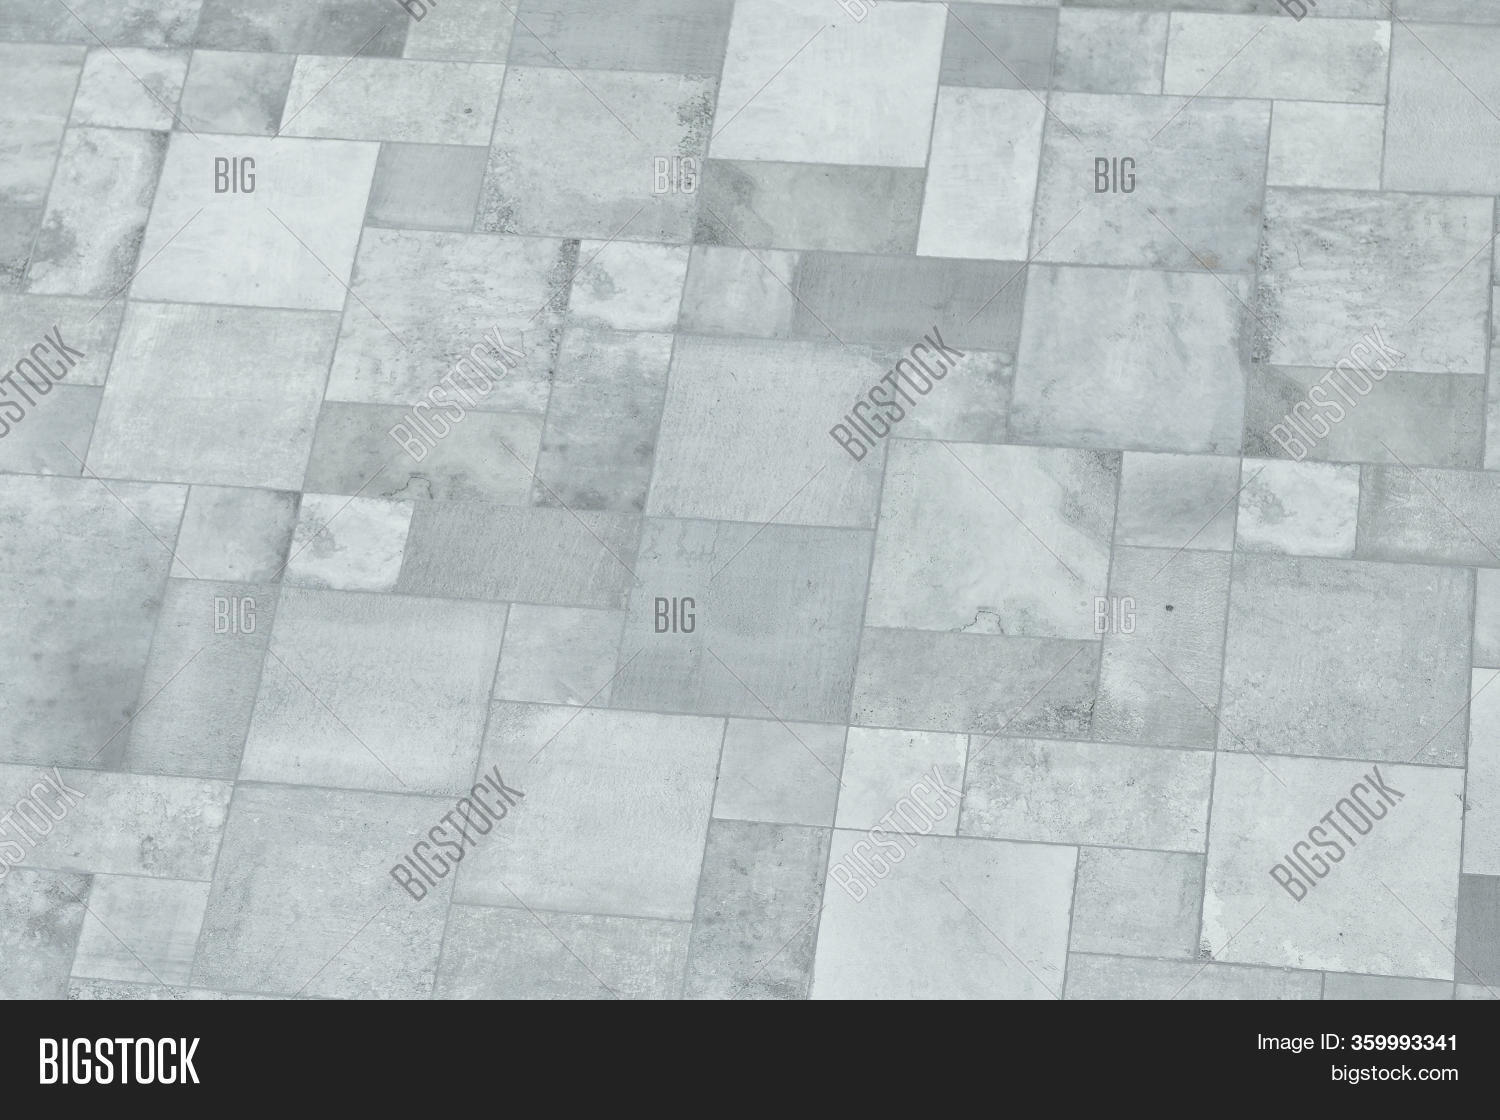 Texture Marble Floor Image Photo Free Trial Bigstock